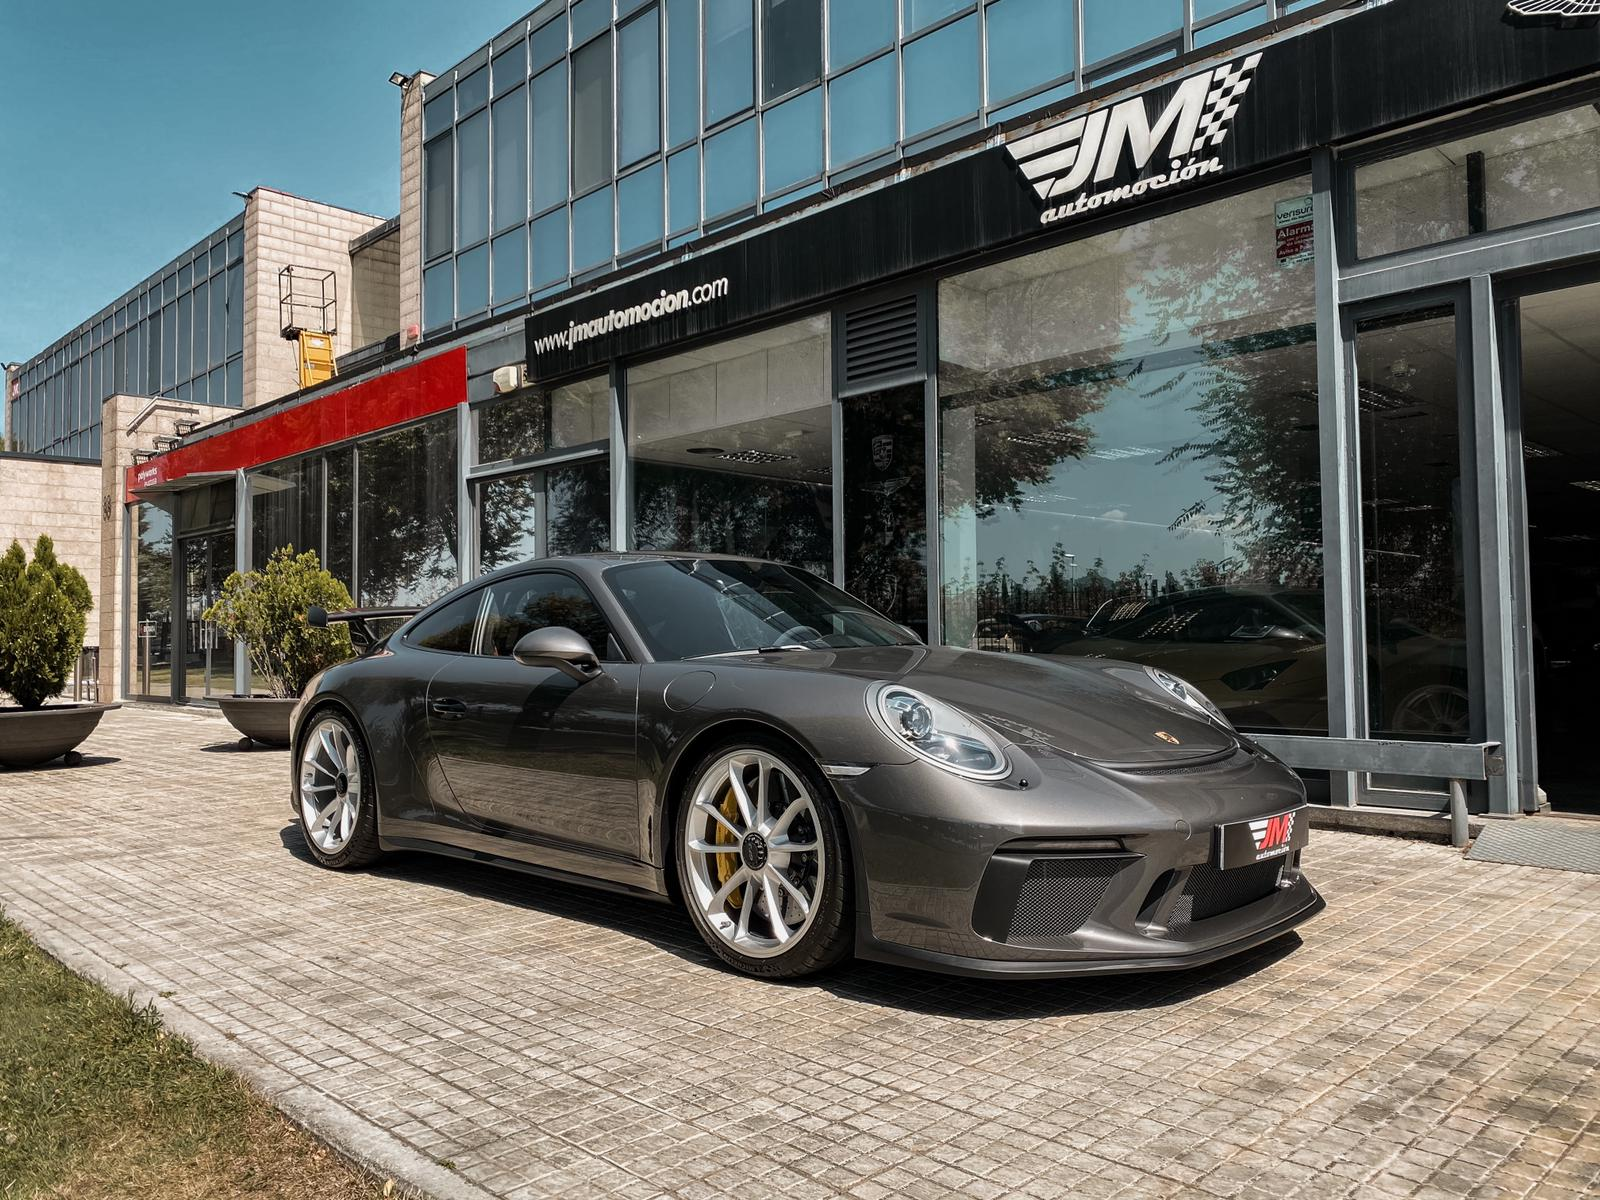 PORSCHE 911 991 GT3 4.0 MANUAL -NACIONAL, VEHICULO A ESTRENAR- IVA DEDUCIBLE